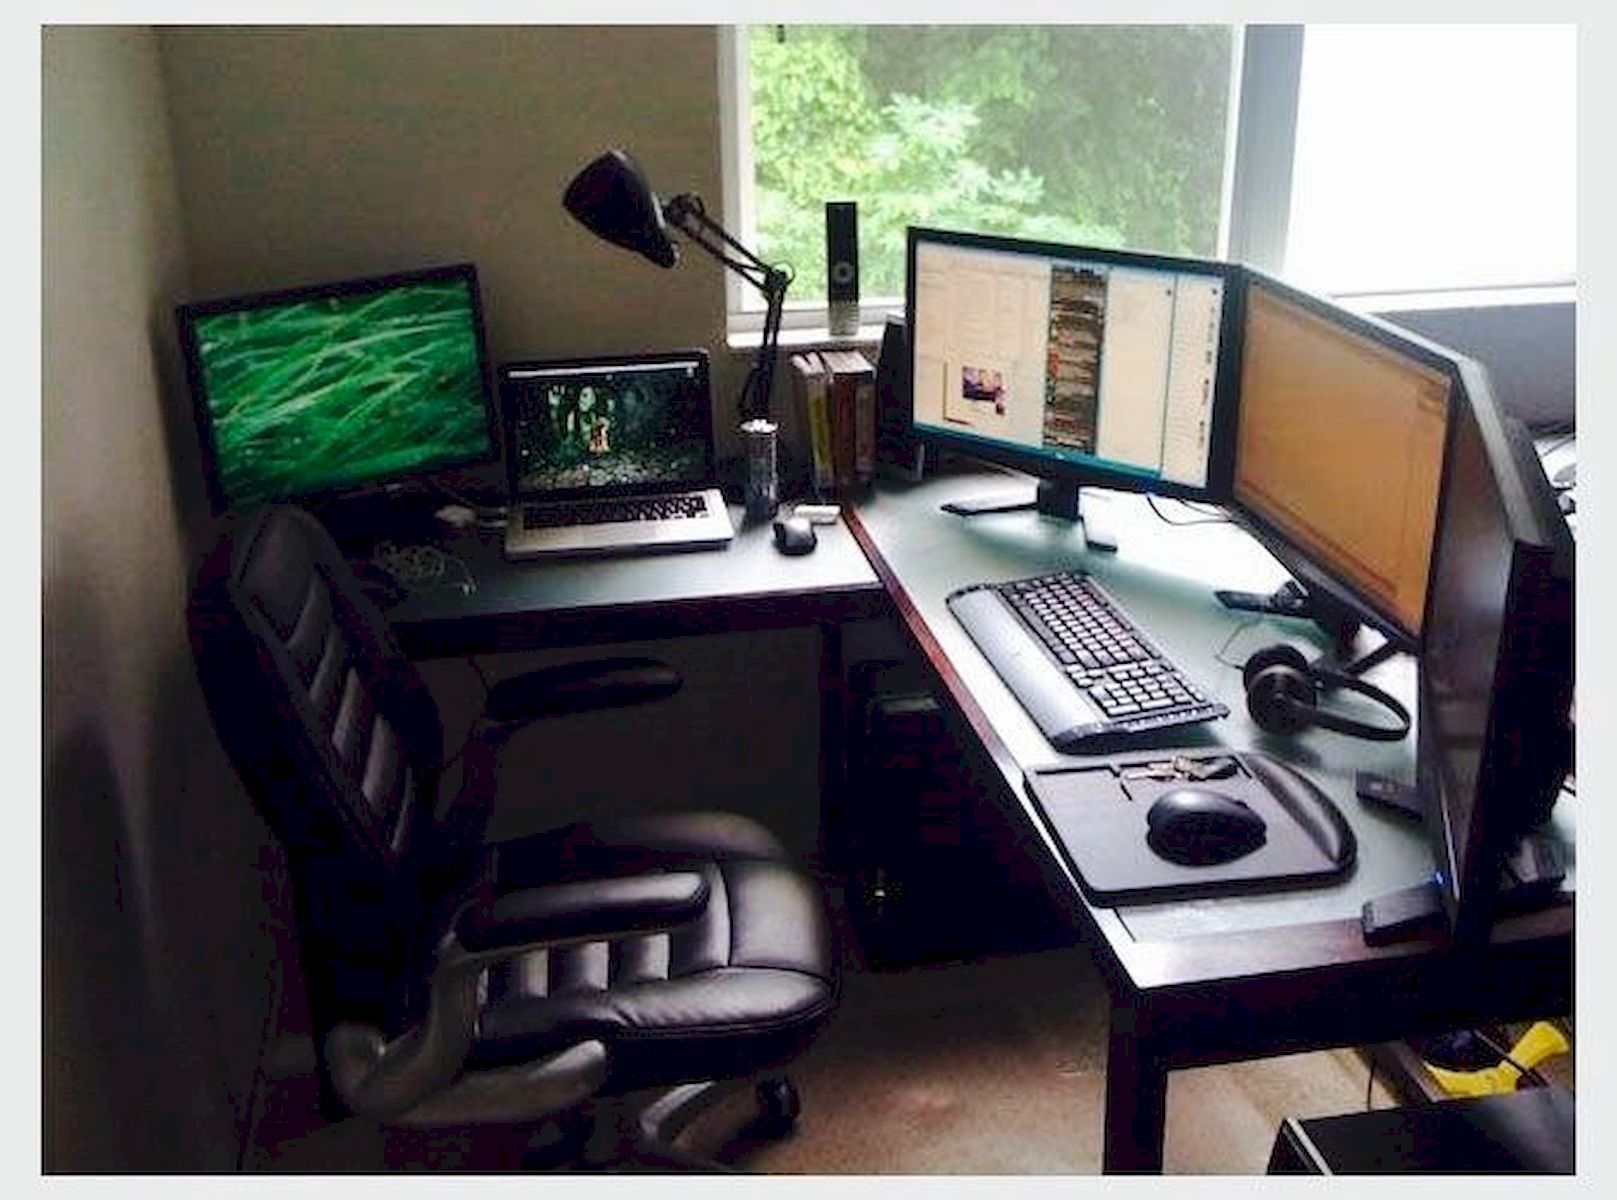 Leading 30 Stunning Home Office Design Homeoffice Homeofficechairs Homeofficedecor Homeofficefurniturenearme Video Game Rooms Home Office Setup Office Setup